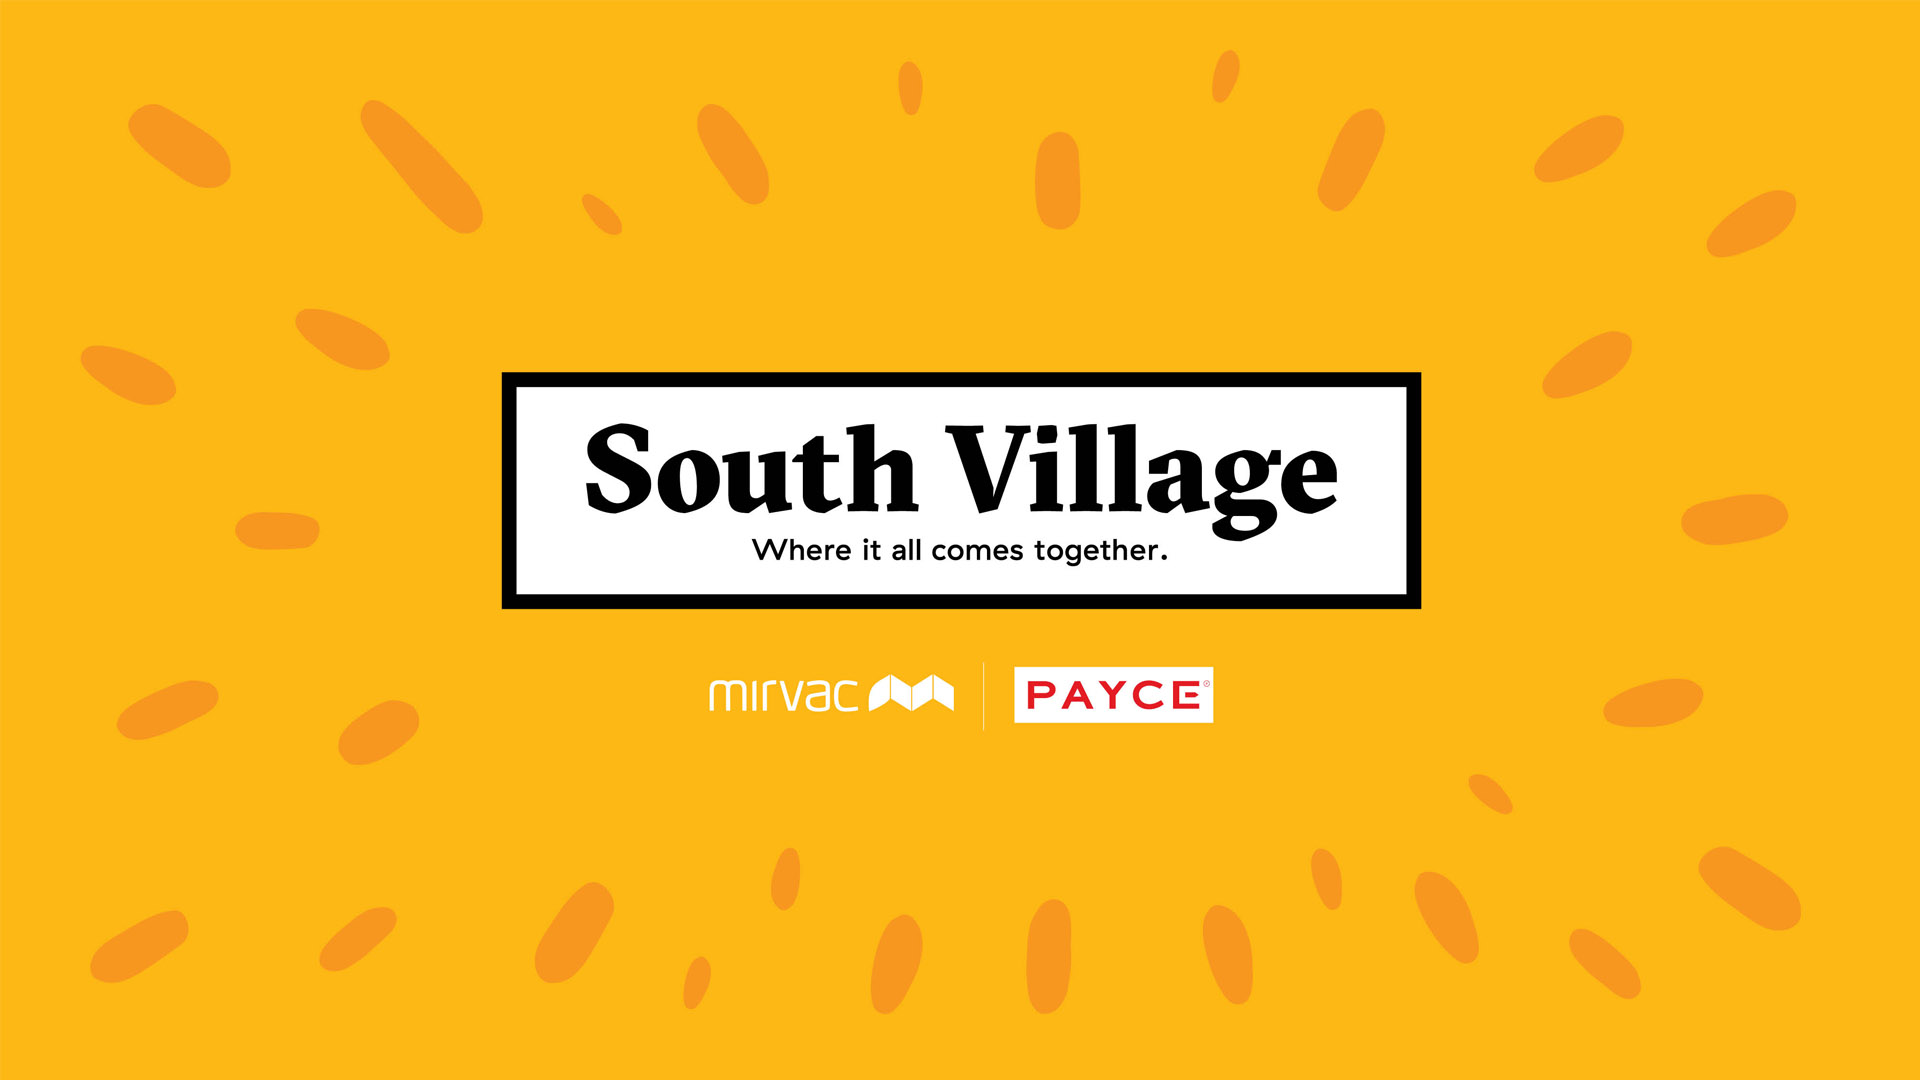 South Sydney's got something special brewing   South Village                         Explore case study »